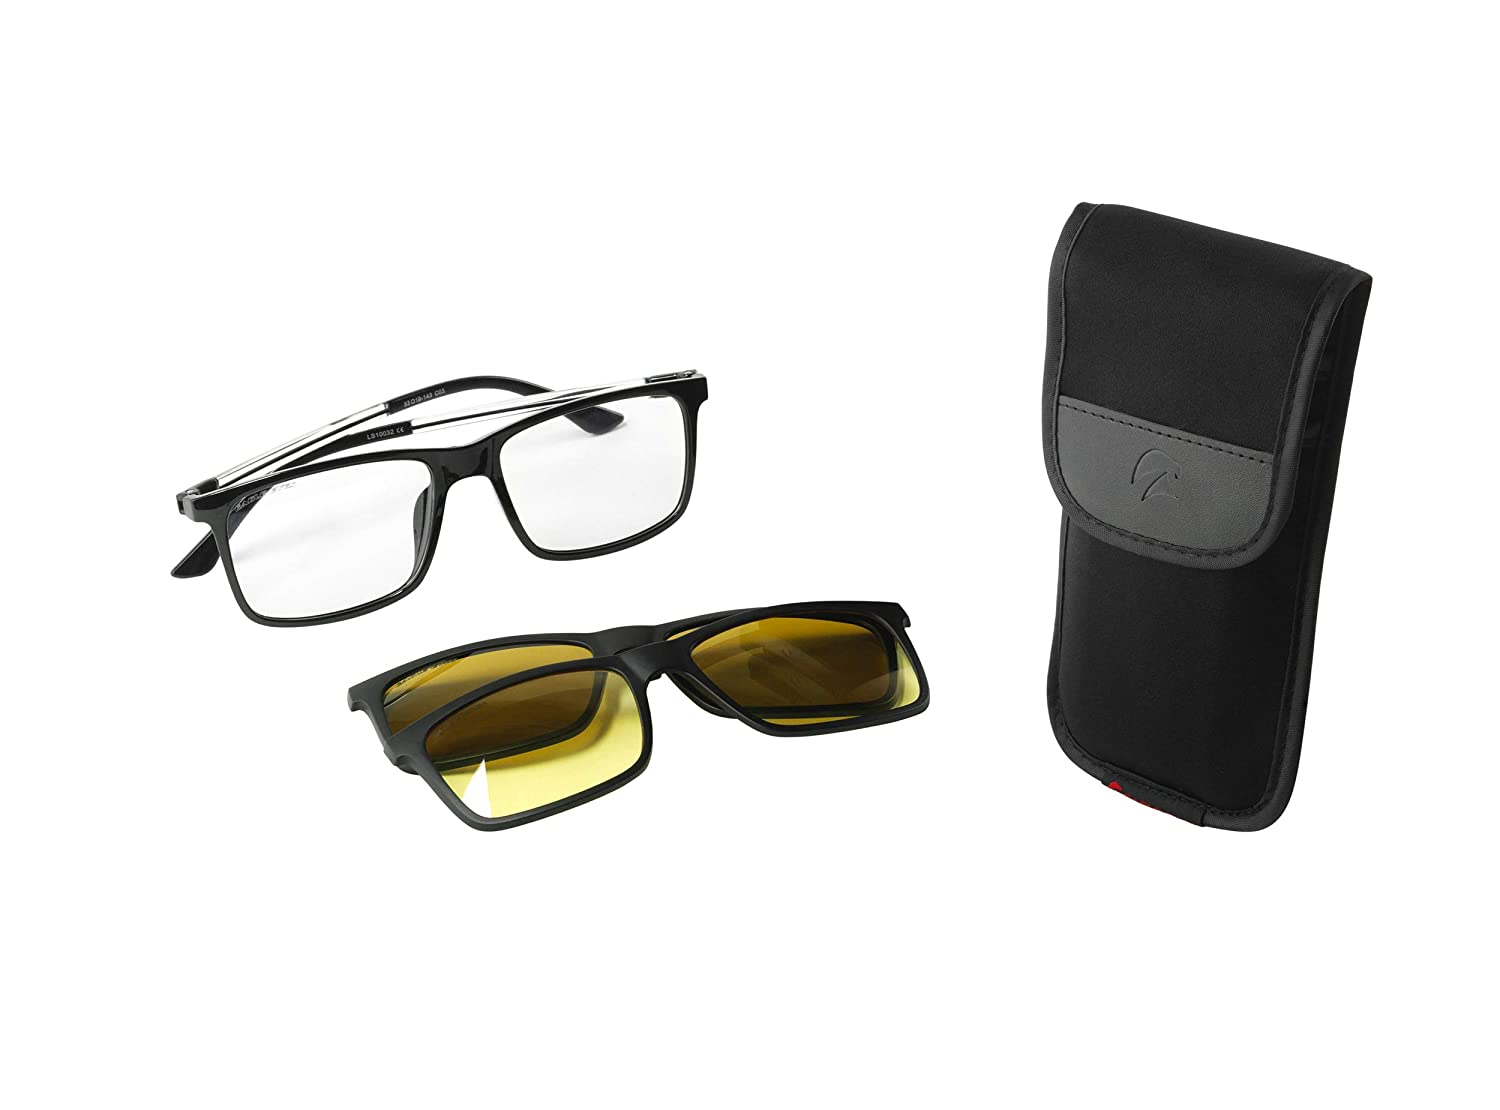 c7d9f4099b Eagle Eyes 3in1 SuperSight System - Magnetic Clip-on Glasses - Computer  Lens Based Frame   Polarized Sunglass Clip-on   Night Driving Clip-on   Amazon.ca  ...